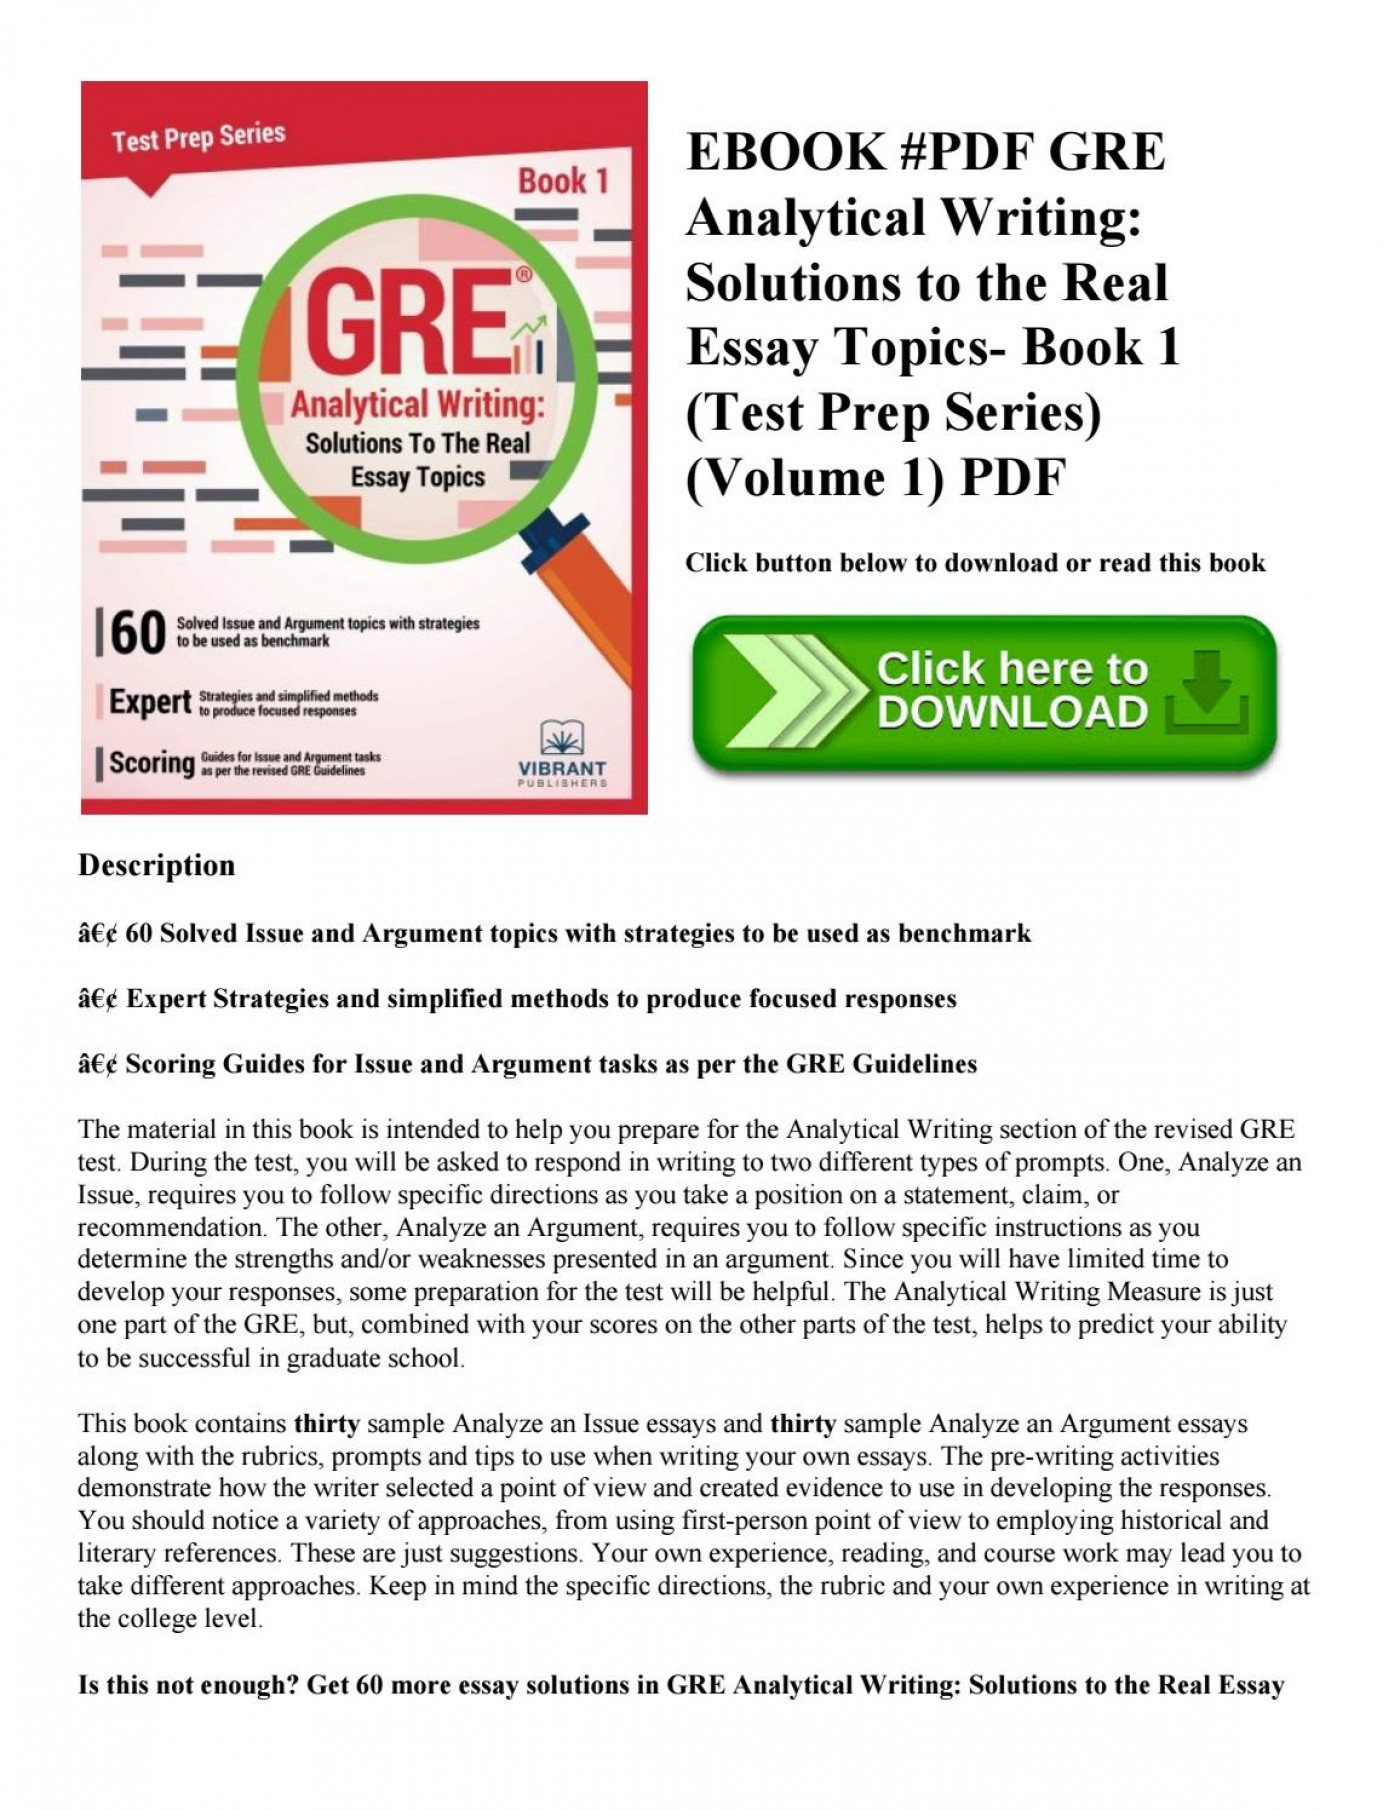 005 Essay Example Gre Book Pdf Page 1 Incredible Analytical Writing 1400